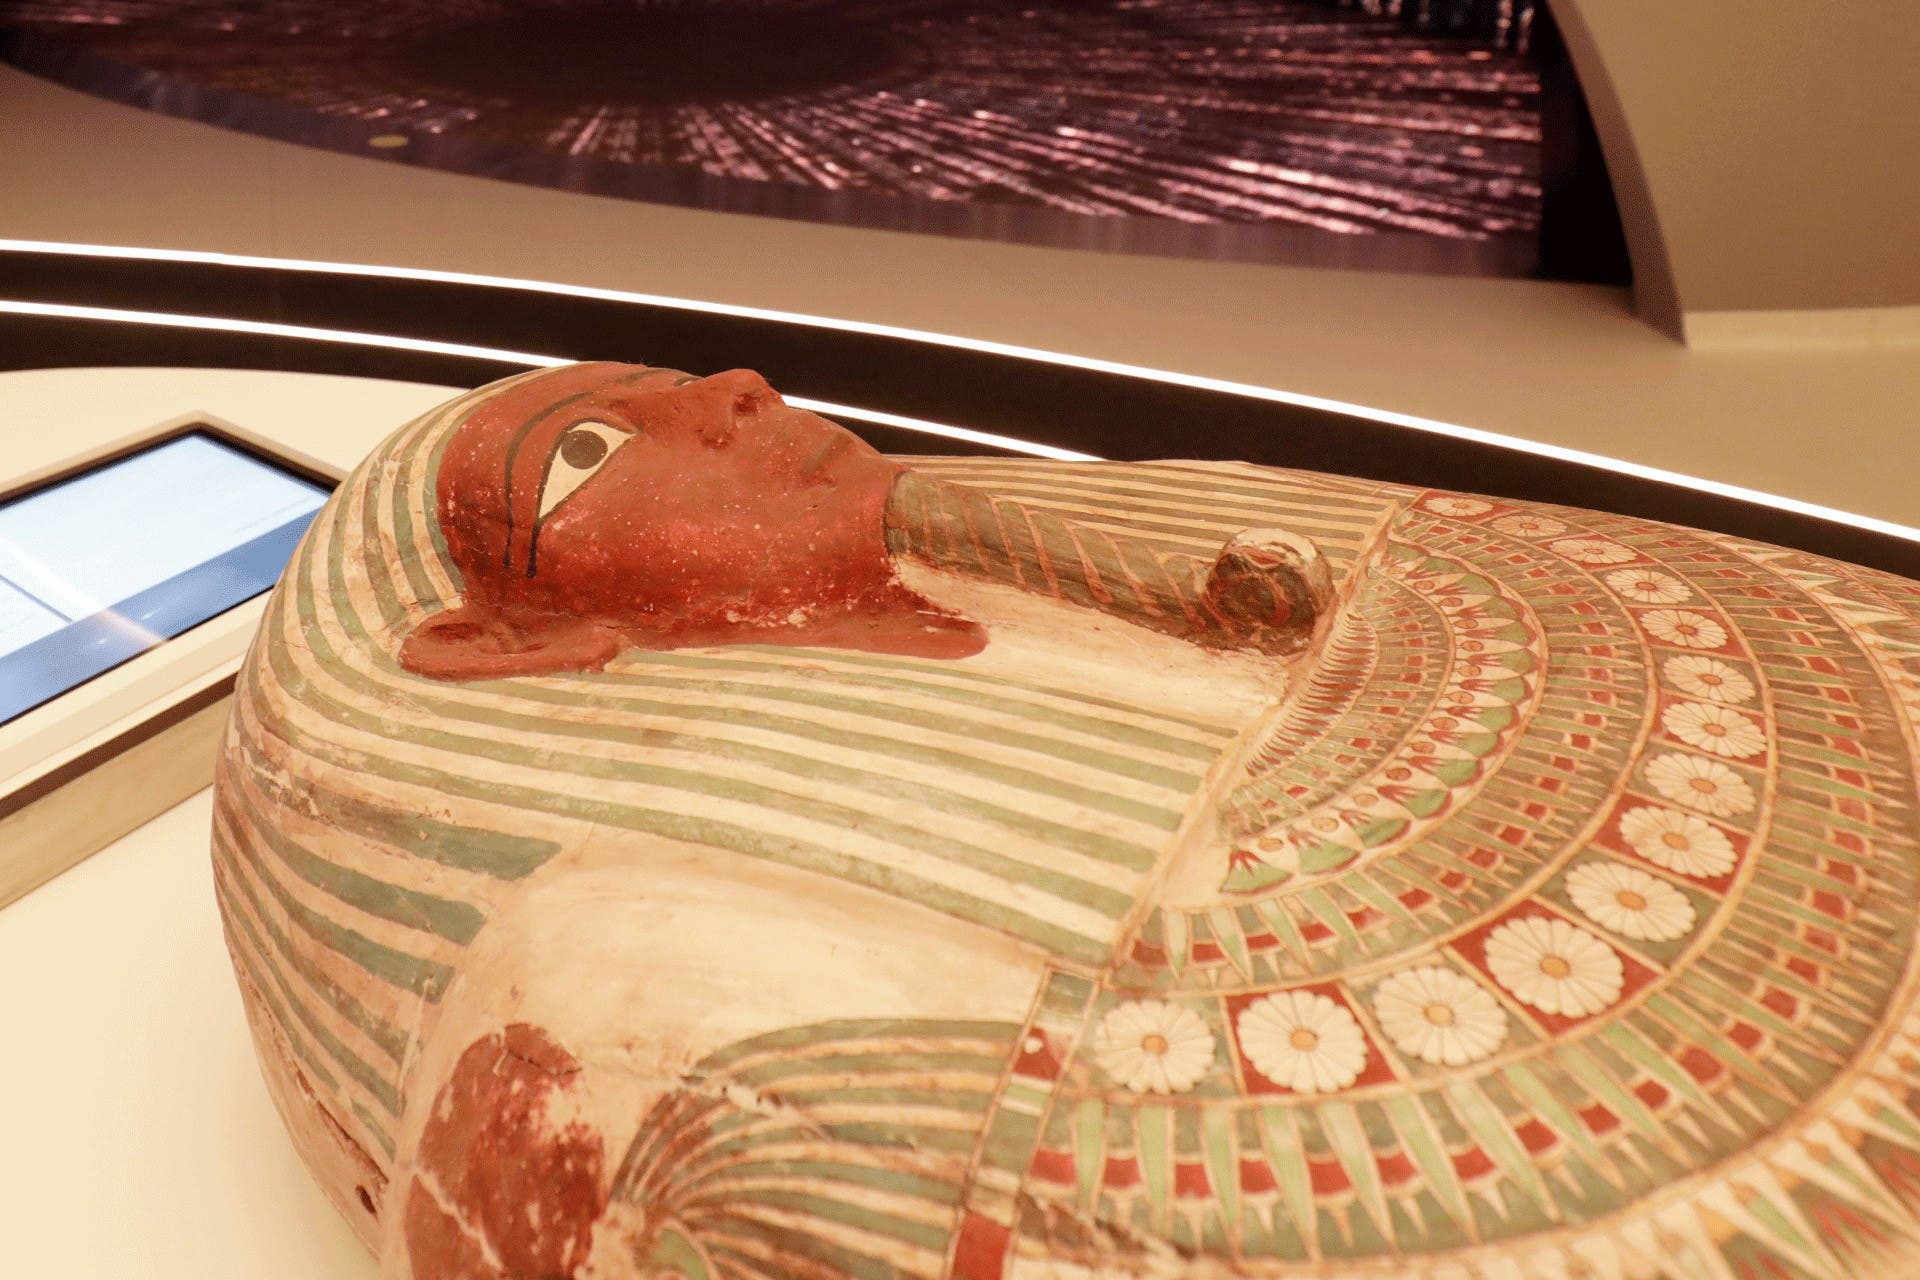 An ancient pharaonic coffin arrives at the Egypt Pavilion ahead of Dubai Expo 2020. (Supplied)